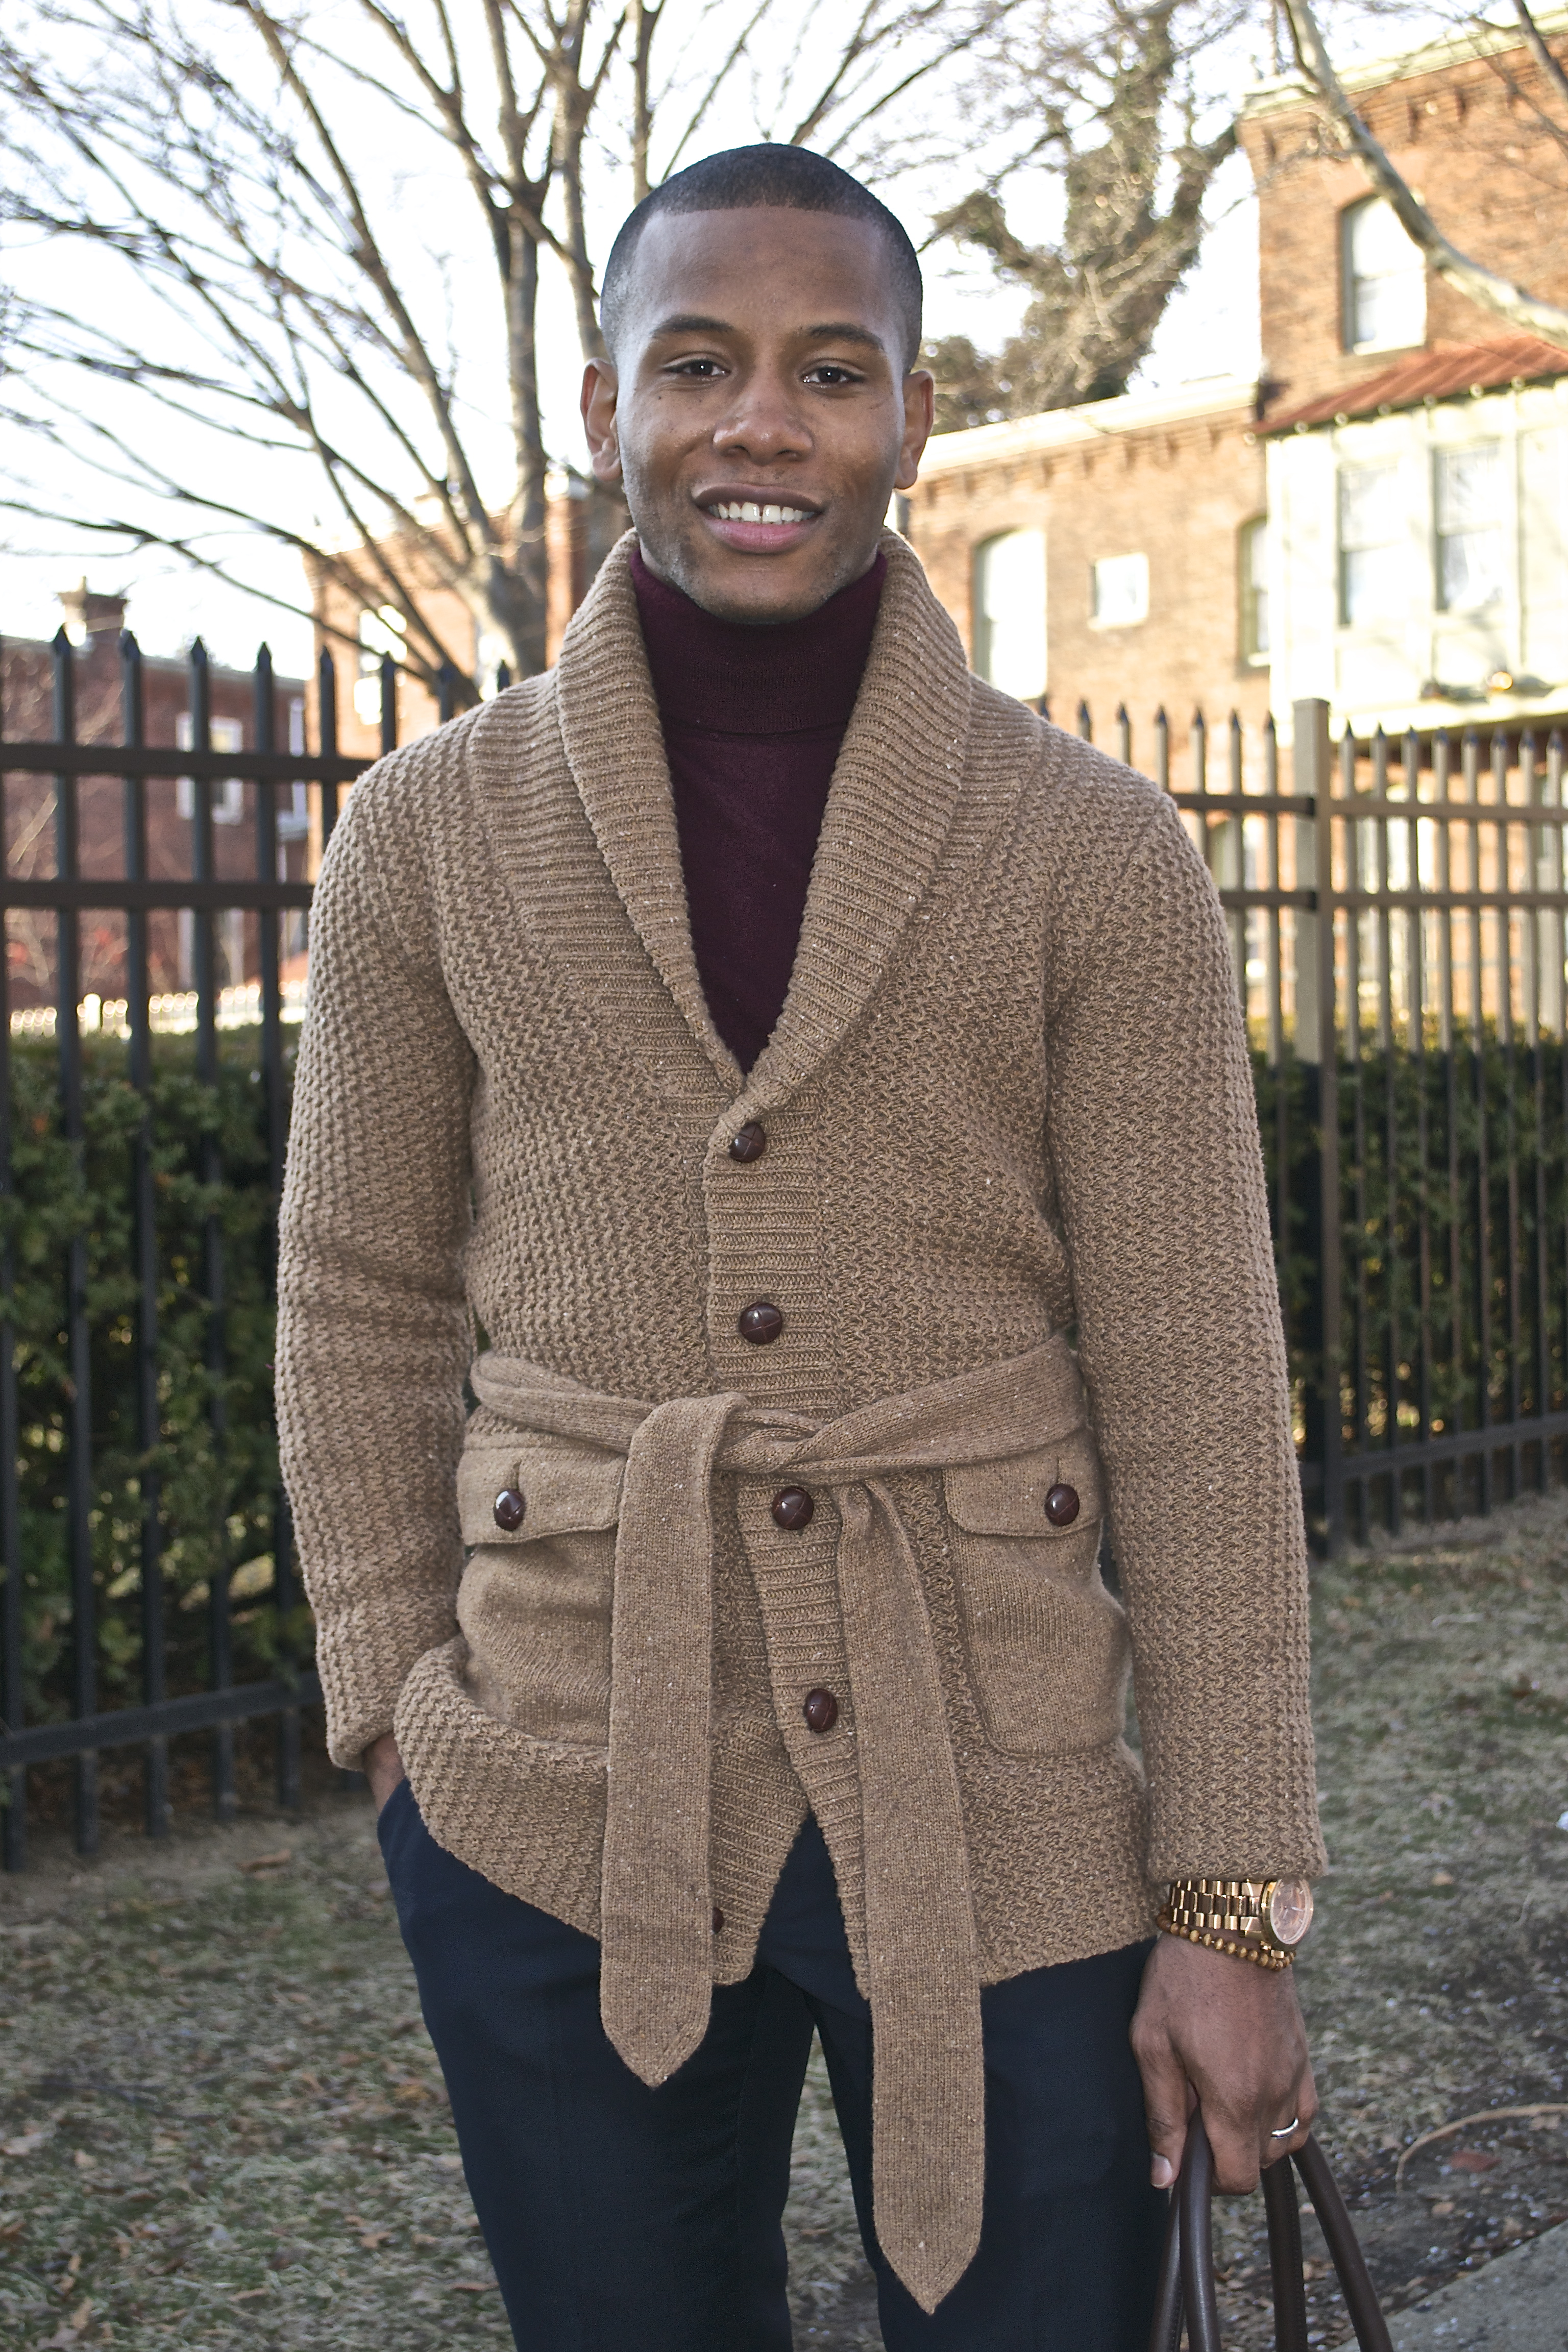 How To: Wear Cardigans As Outerwear | Men's Style Pro ...